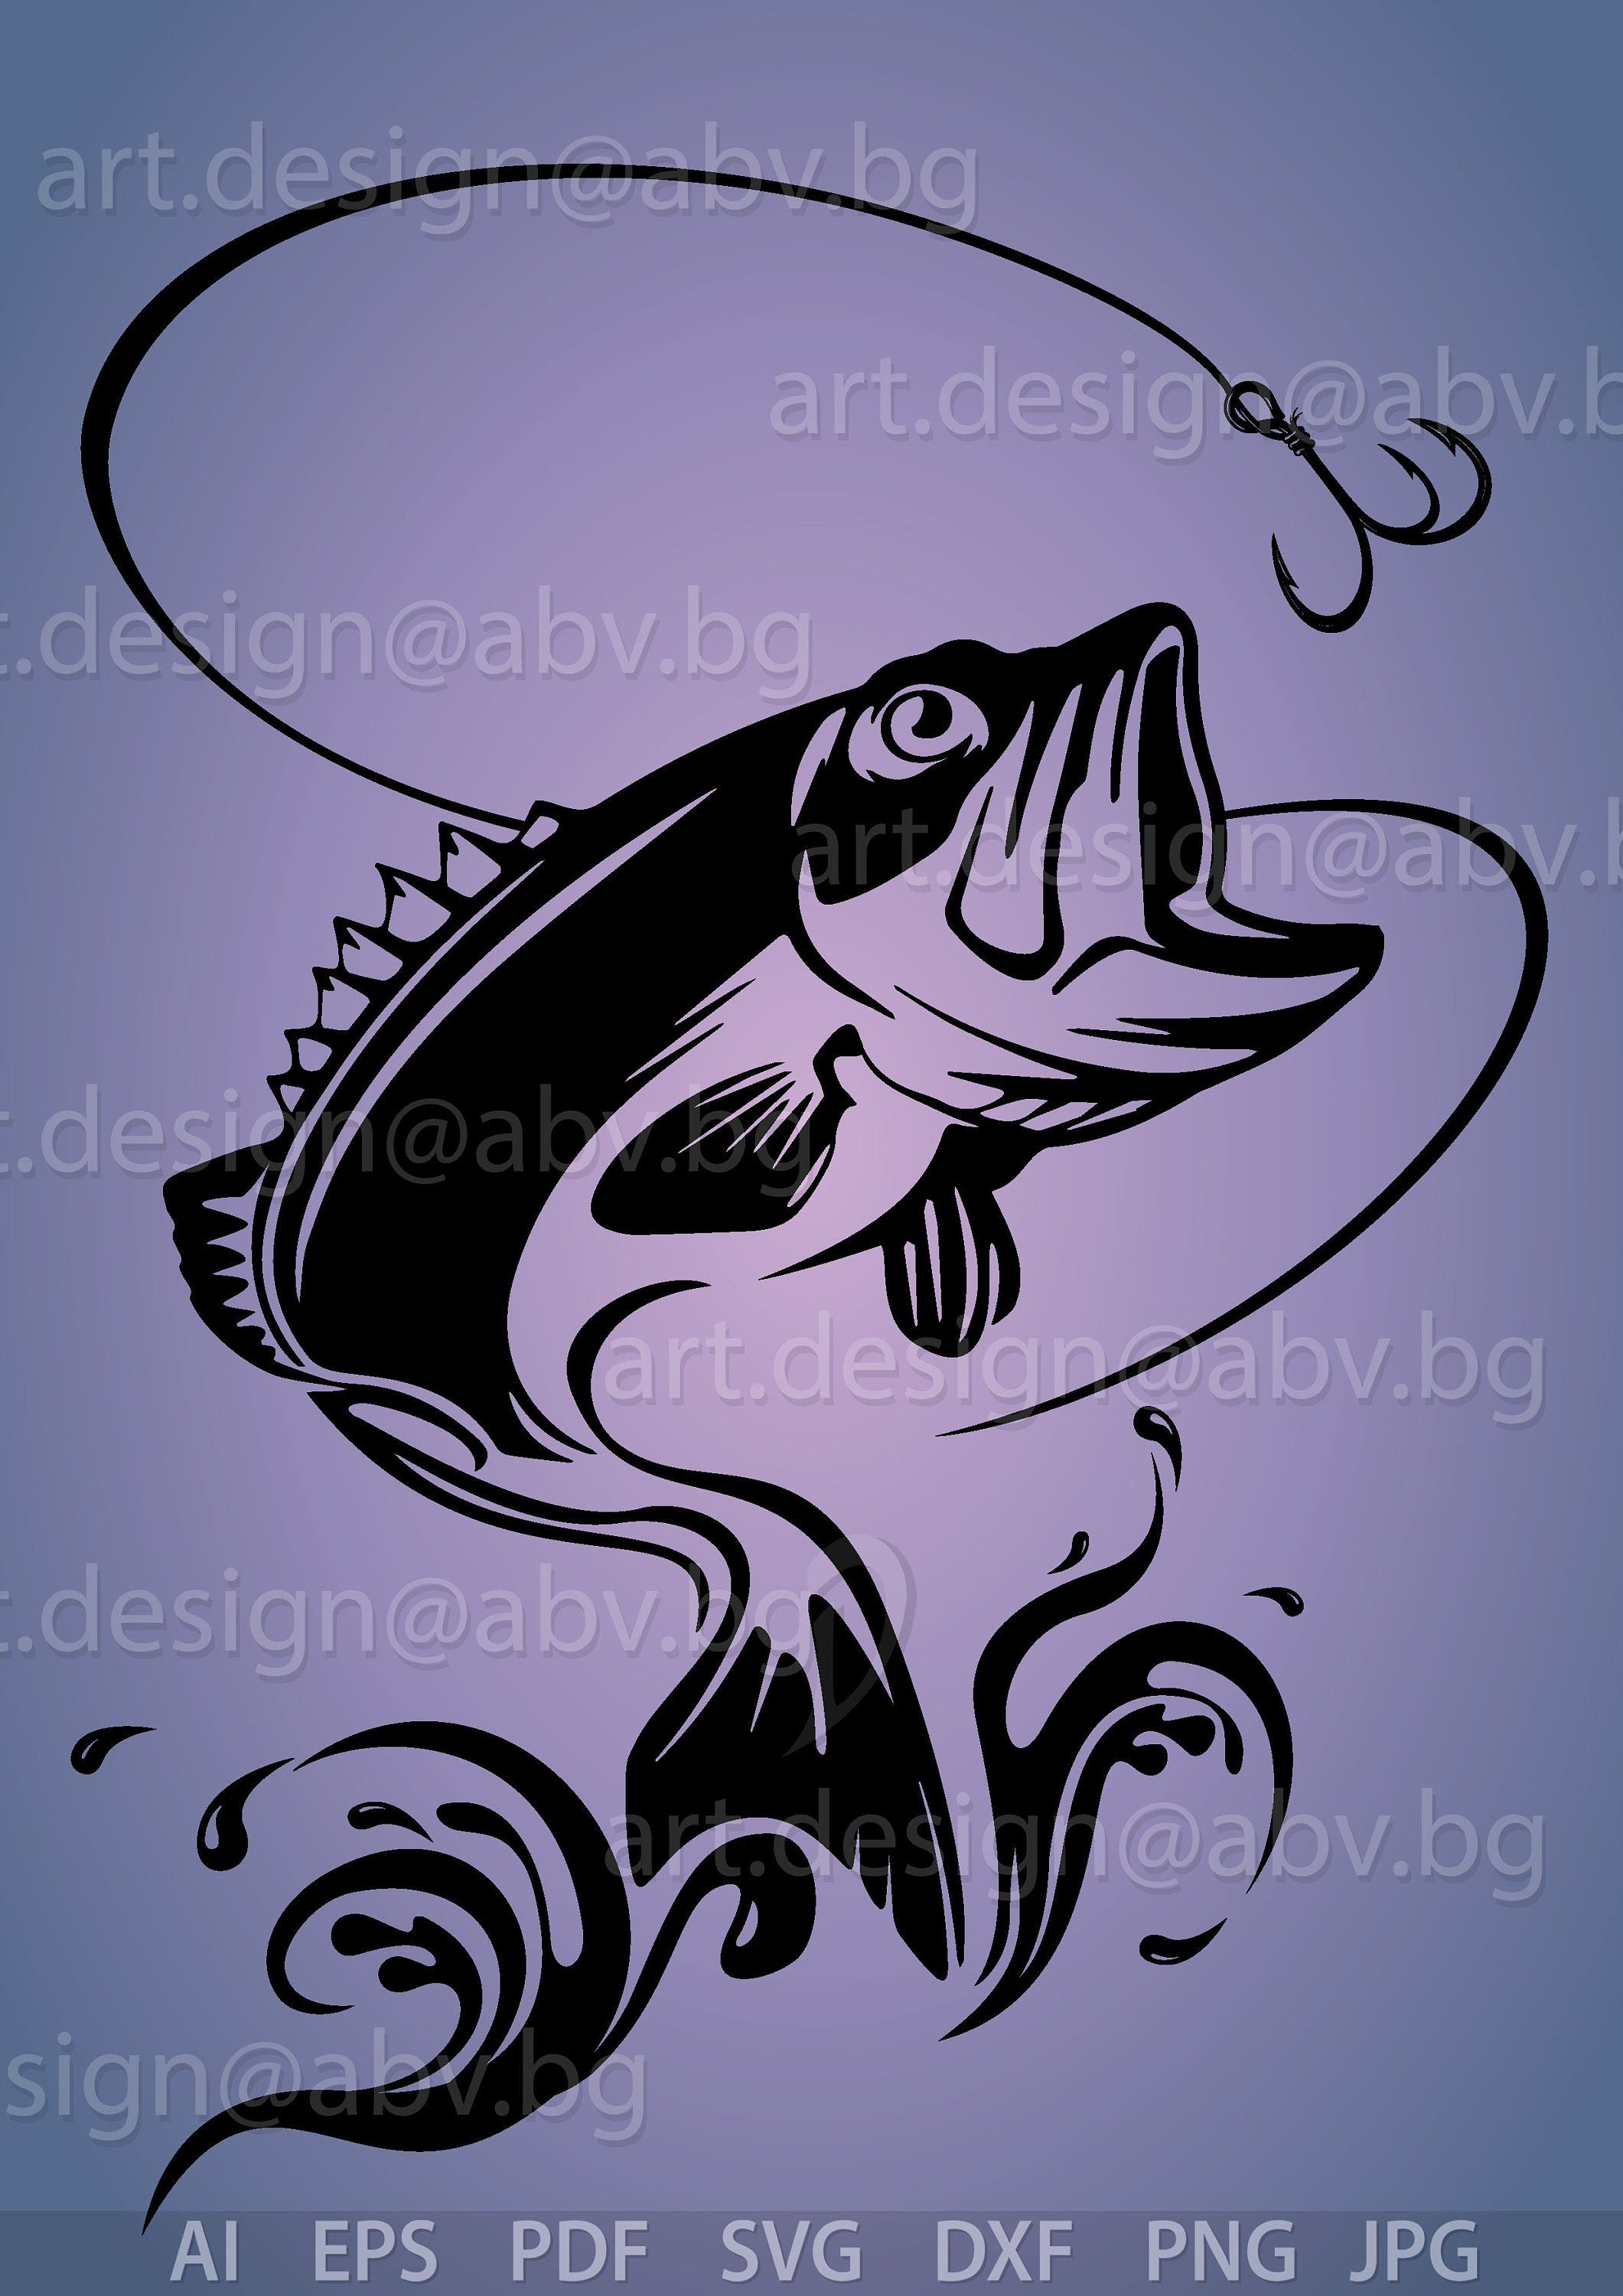 Vector Fish On A Hook Ai Eps Pdf Png Svg Dxf Jpg Image Graphic Digital Download Artwork Fish On A Hook Svg Discount Coupons Graphic Image Svg Fish On A Hook